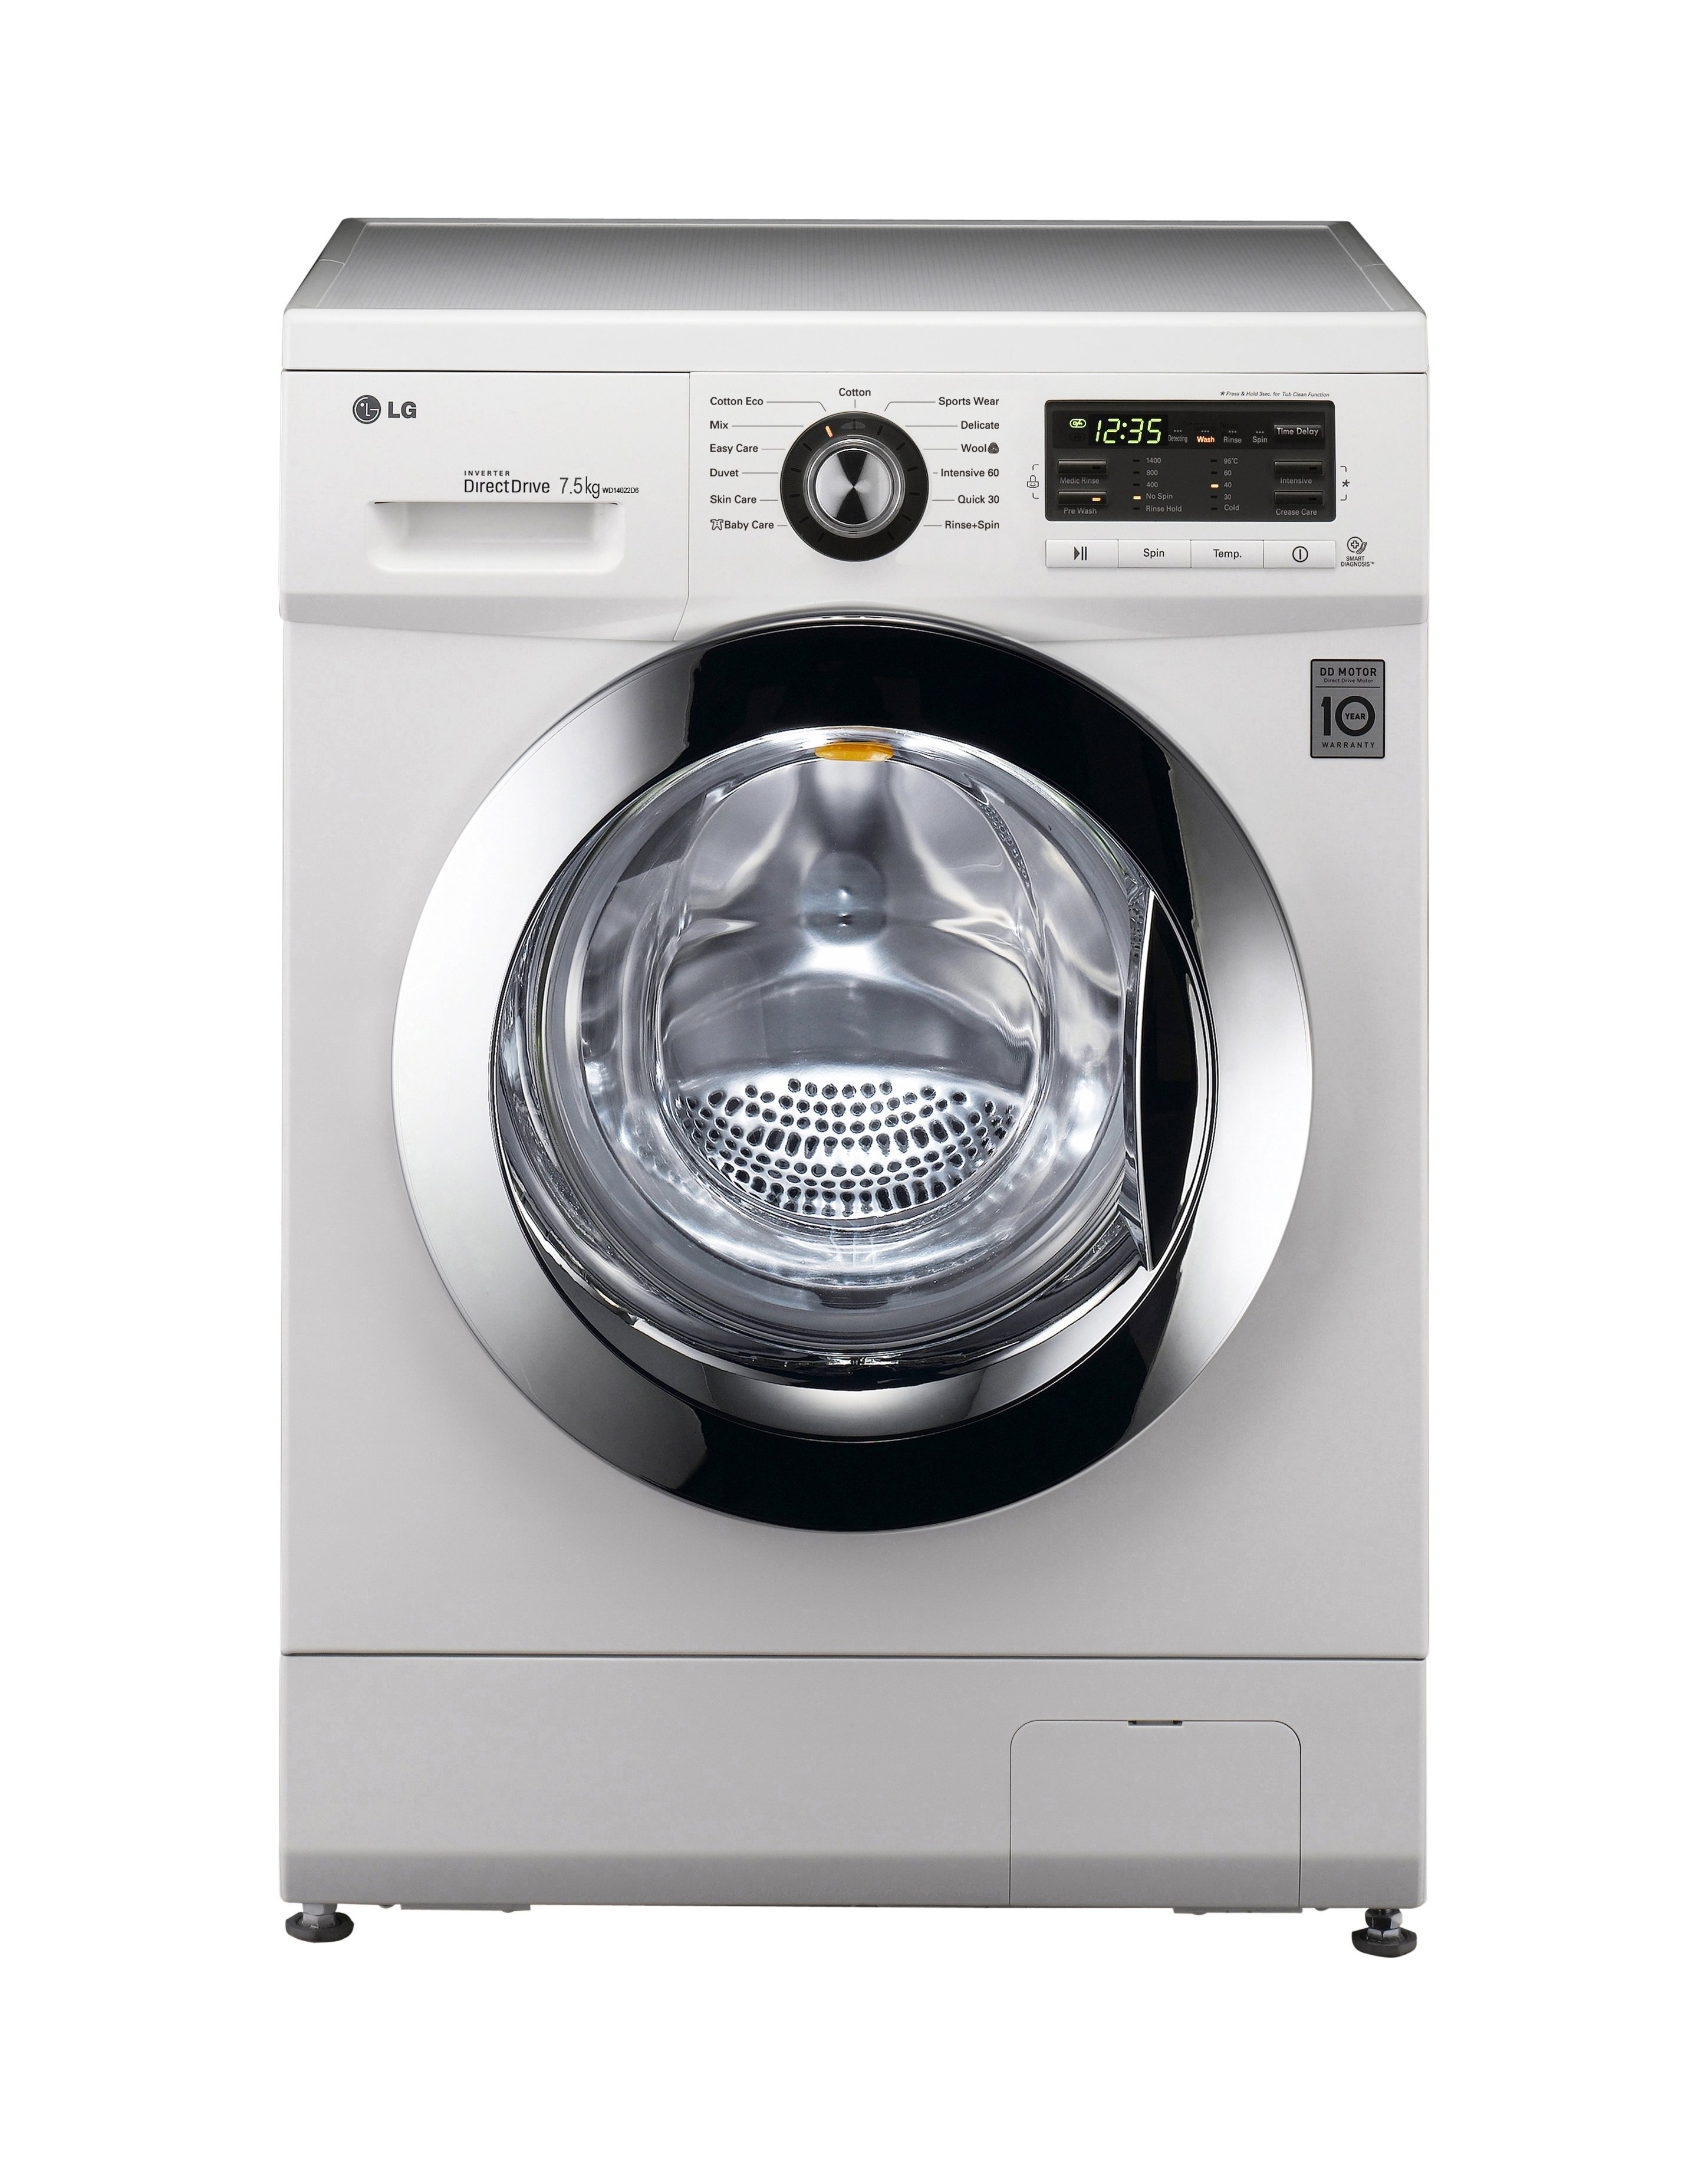 LG WD14022D6 7.5kg Front Load Washing Machine. Unfortunately, this product  is not available.